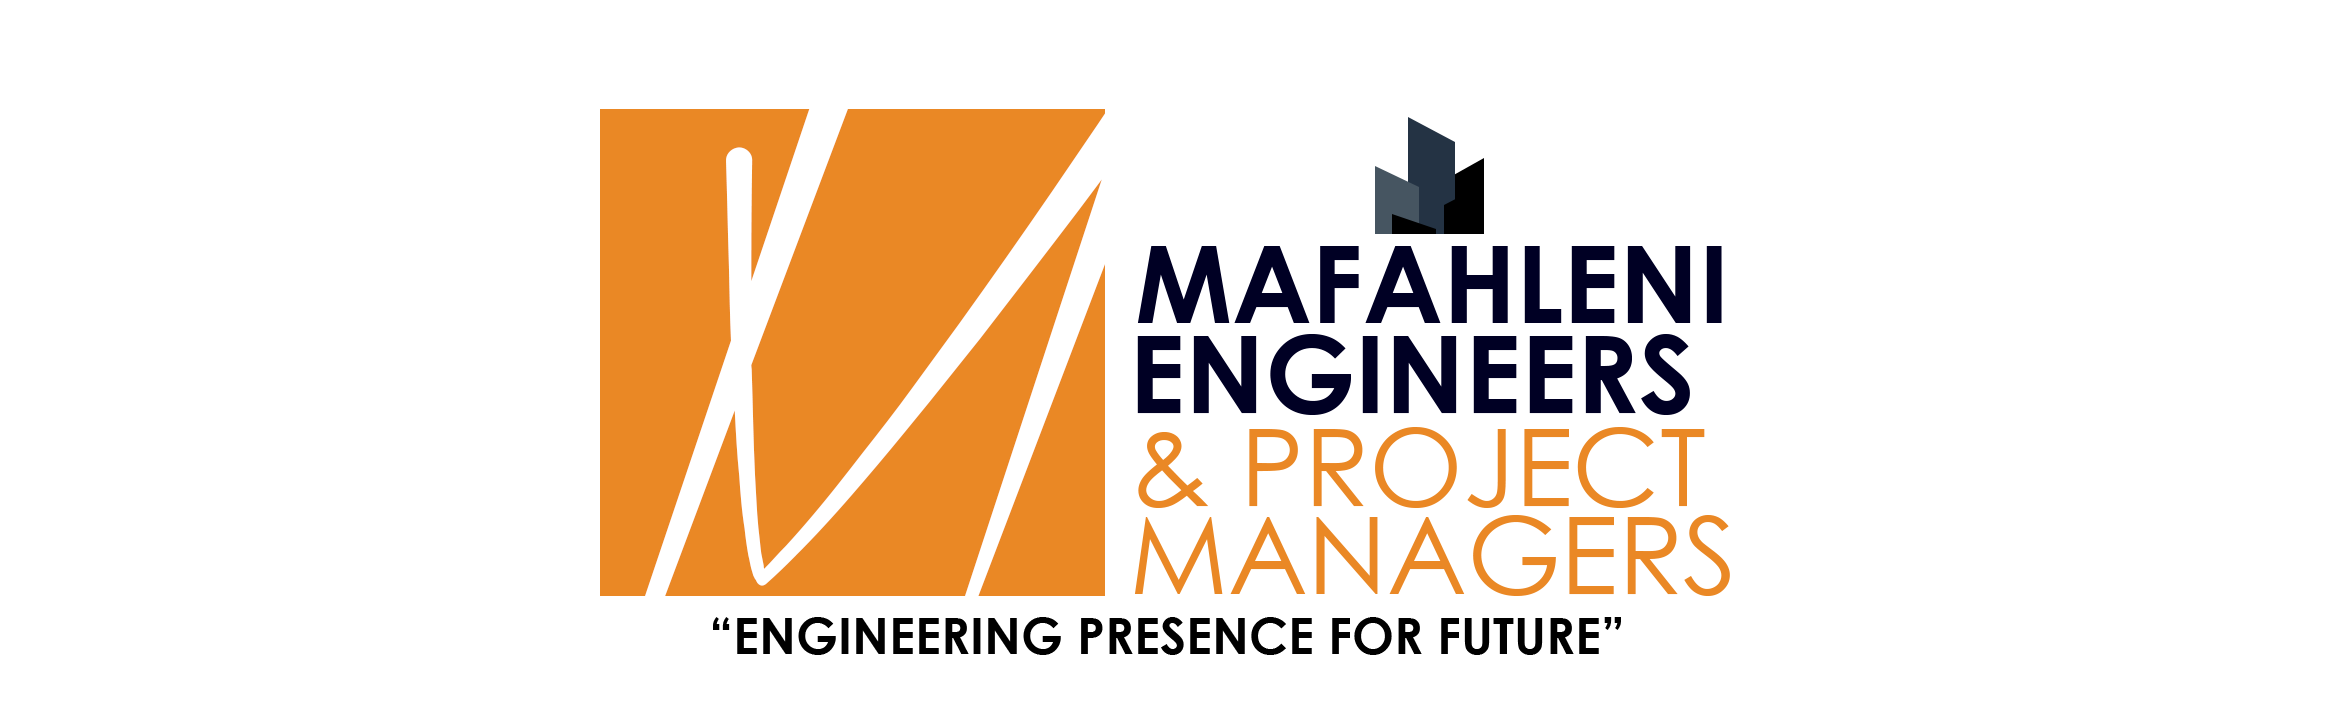 Mafahleni Engineers and Project Managers